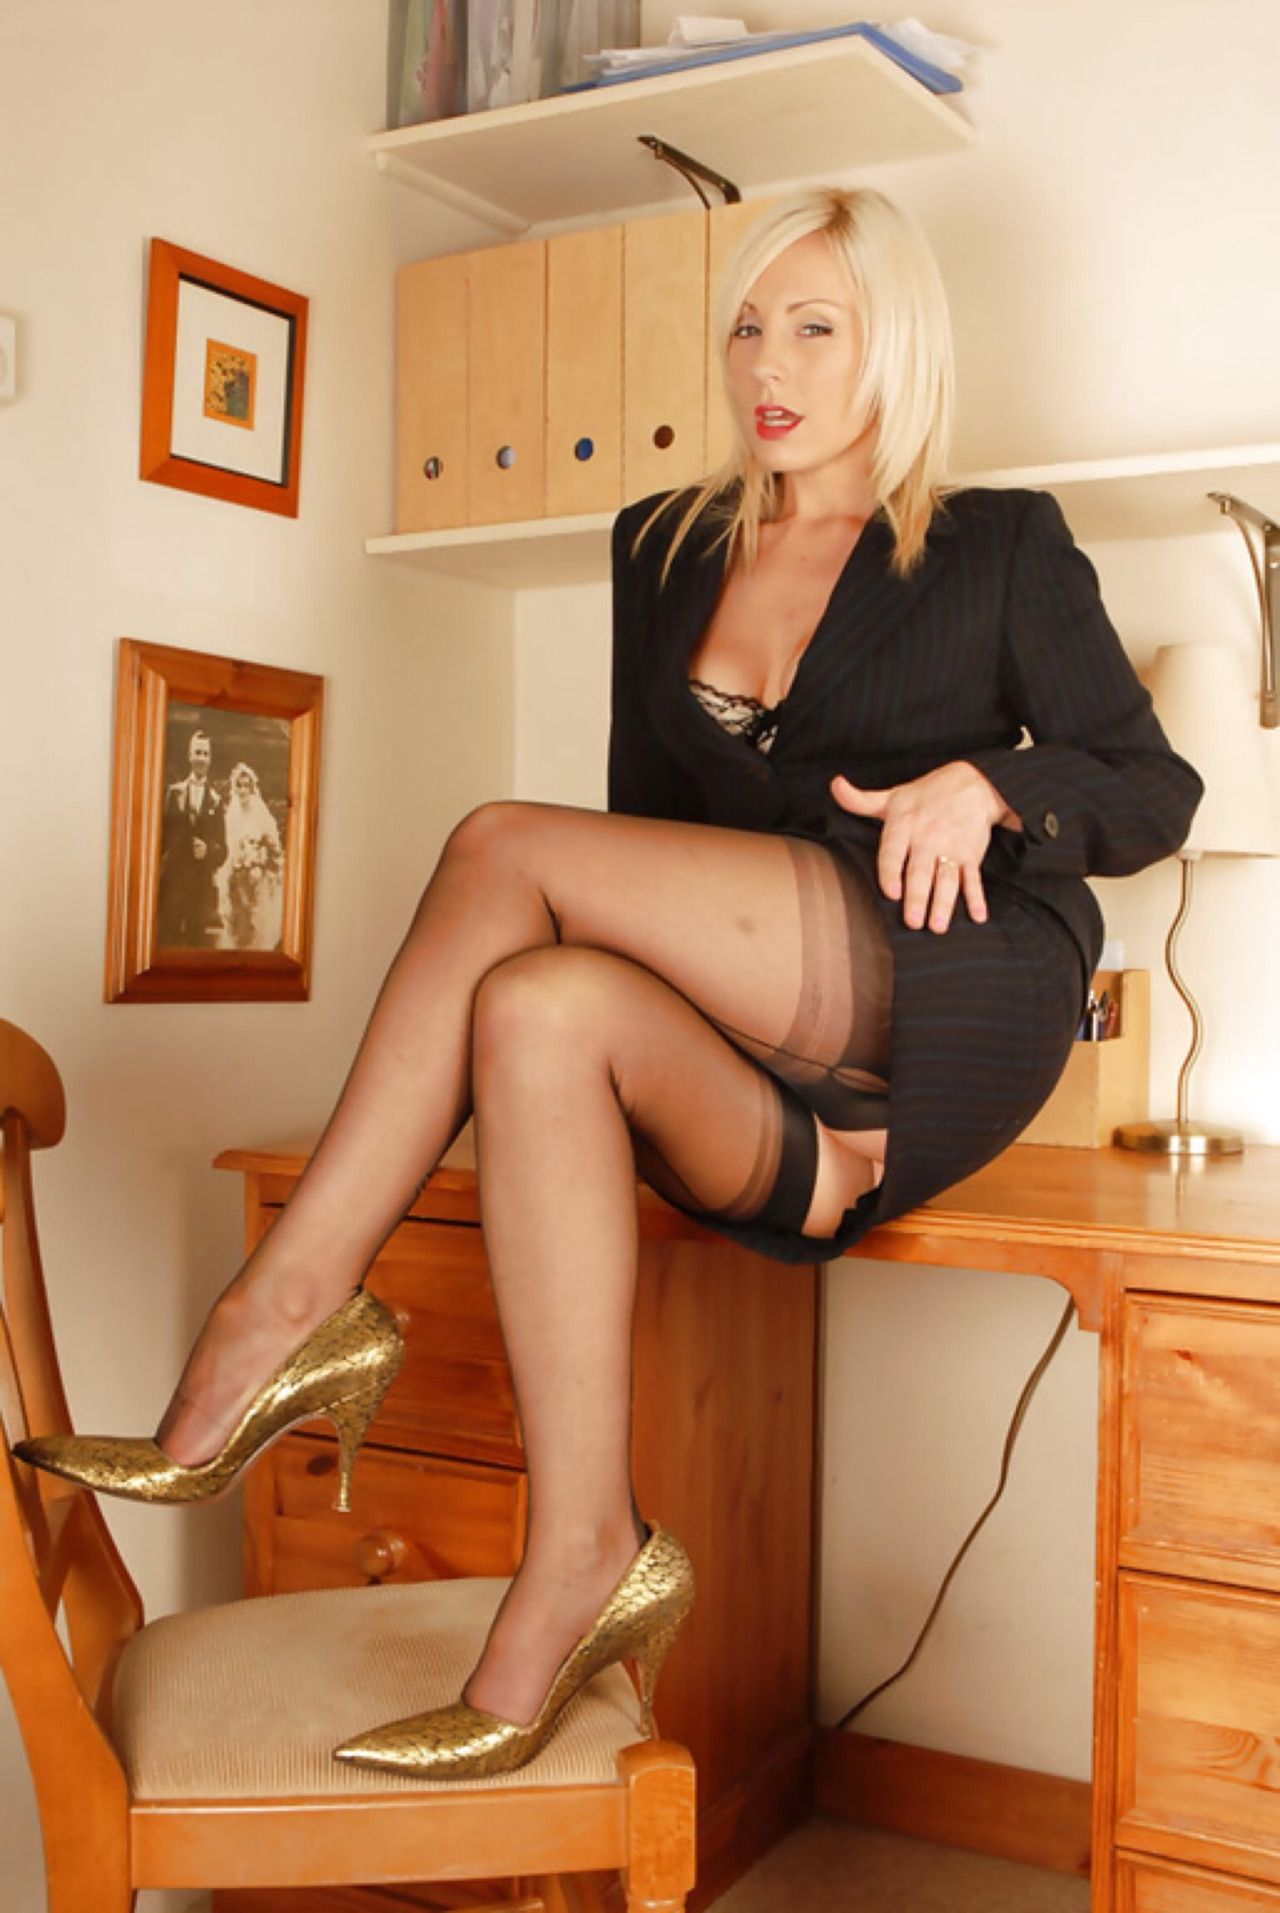 seamed stockings : photo | photography | pinterest | stockings, legs